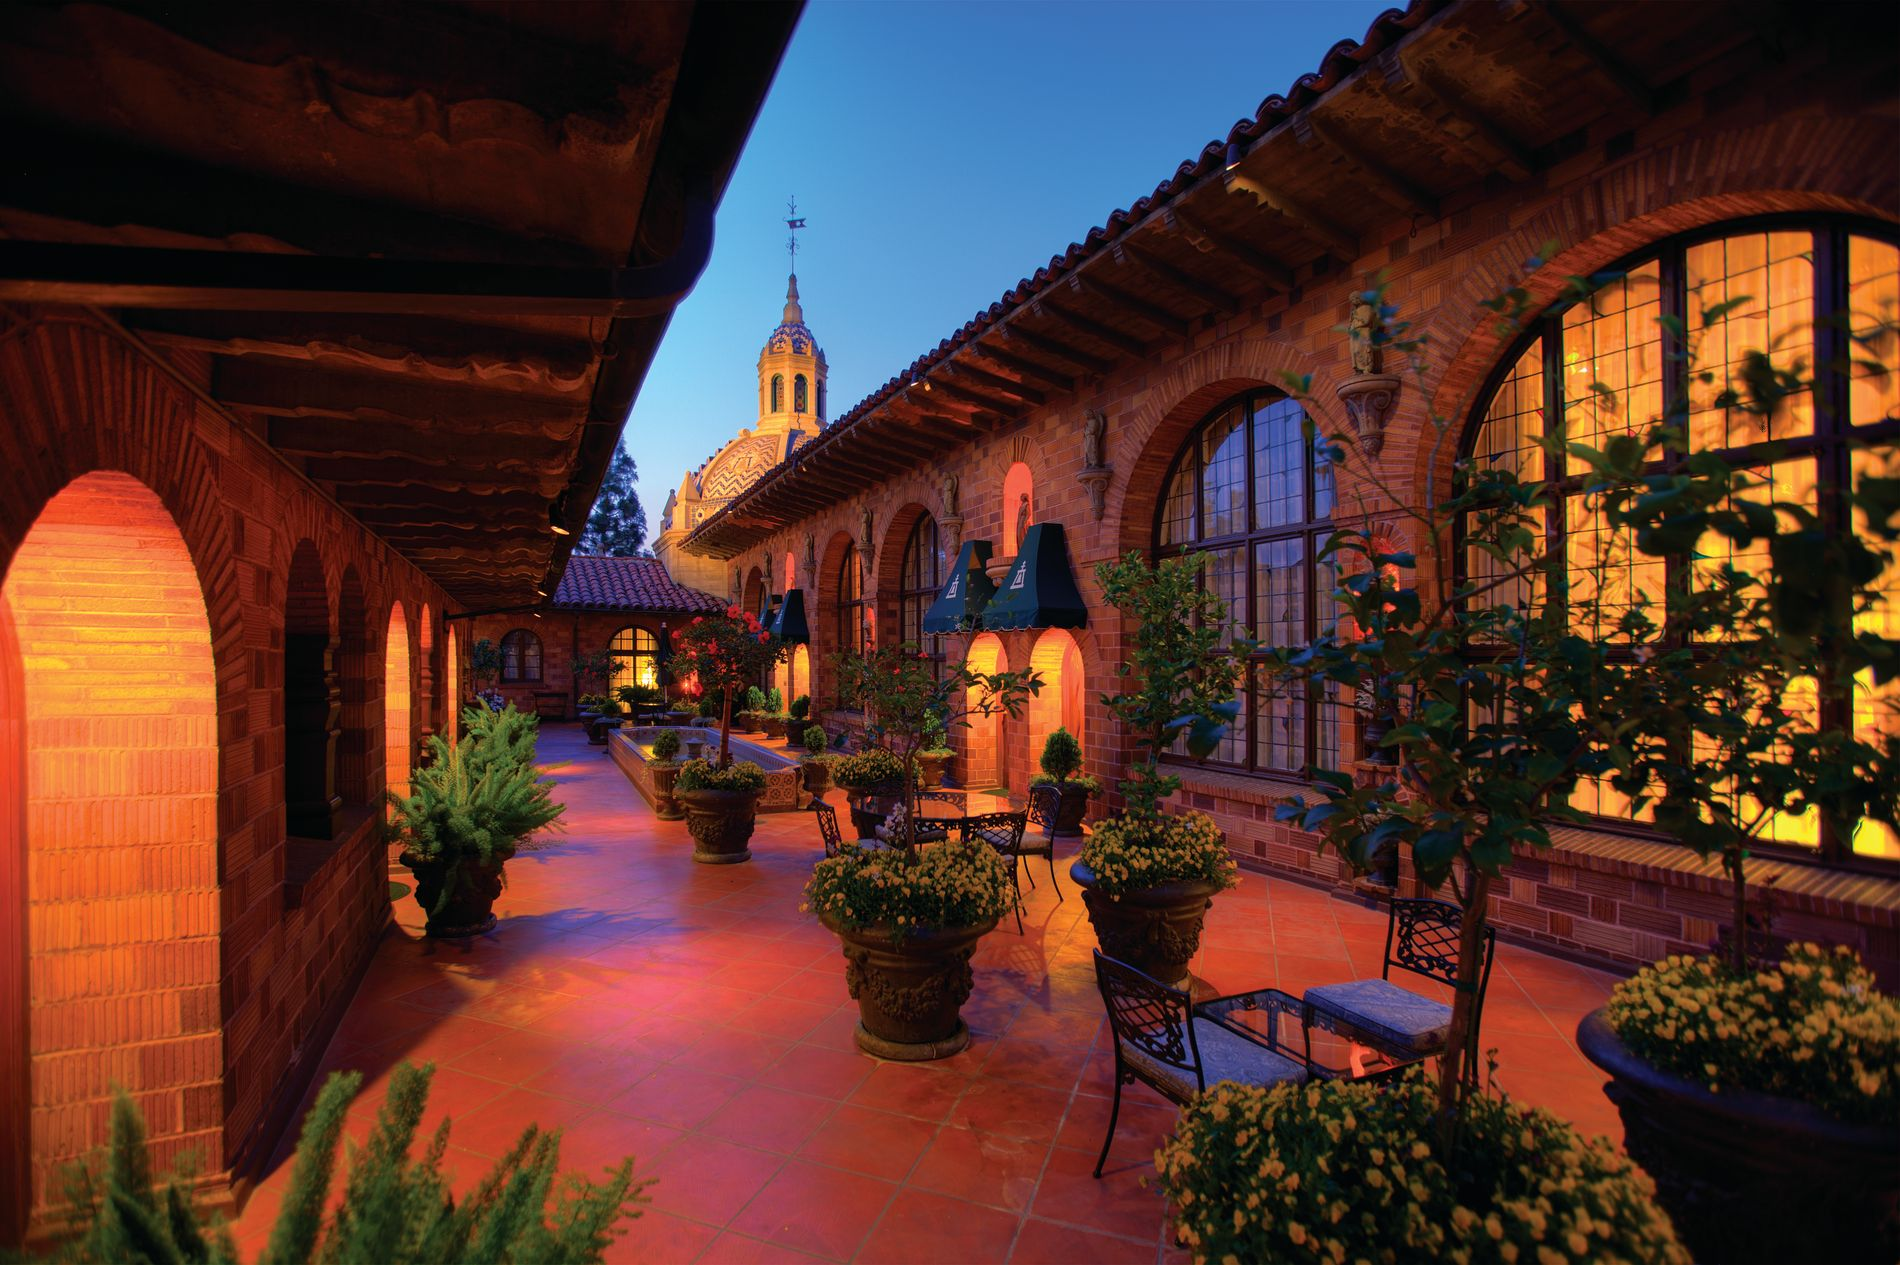 outdoor terrace at Mission Inn with tables and chairs